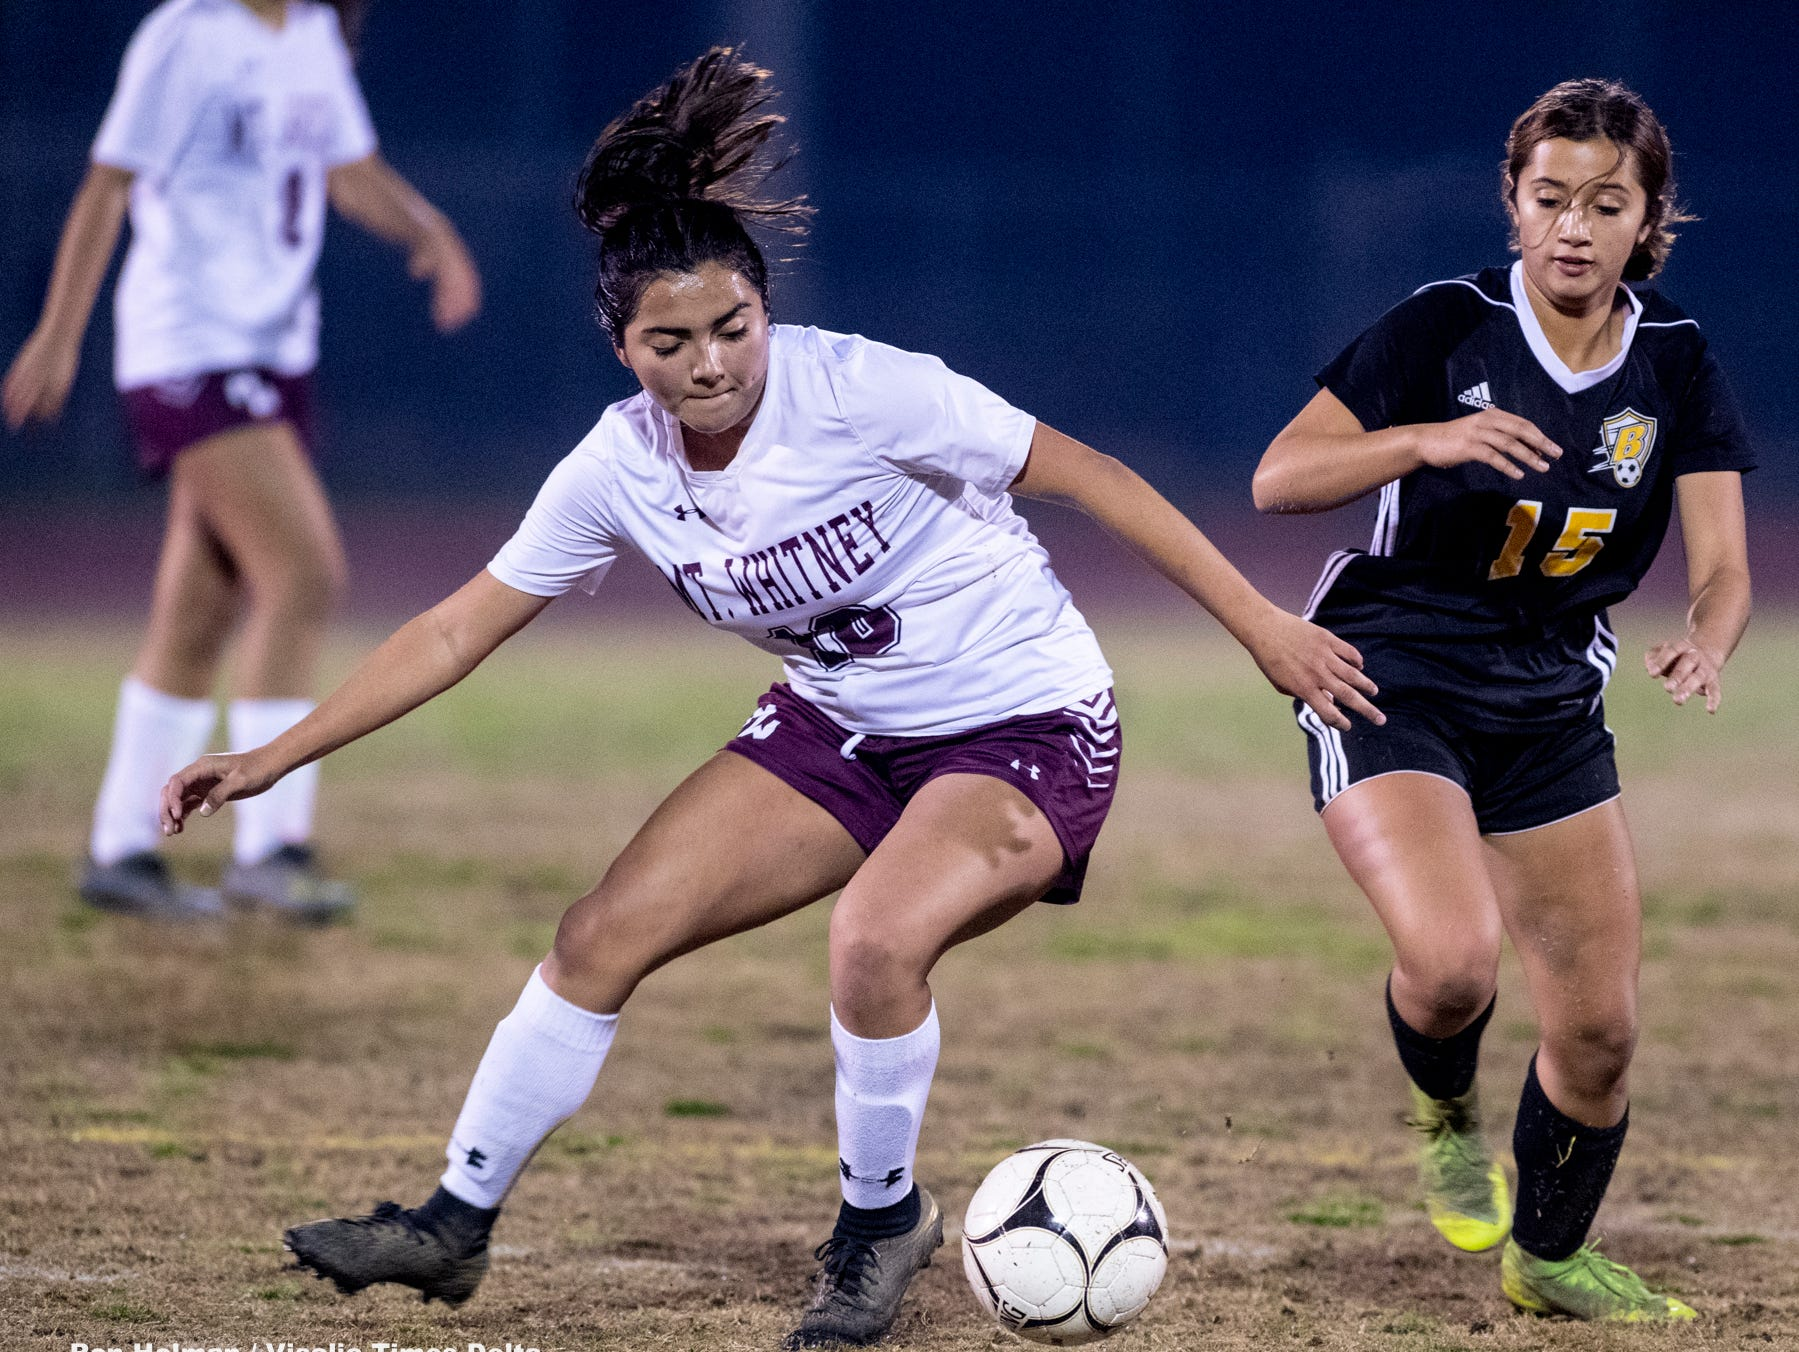 Golden West's 	Izabel Pelayo (15) plays against Mt. Whitney in a girls soccer game on Wednesday, January 23, 2019.